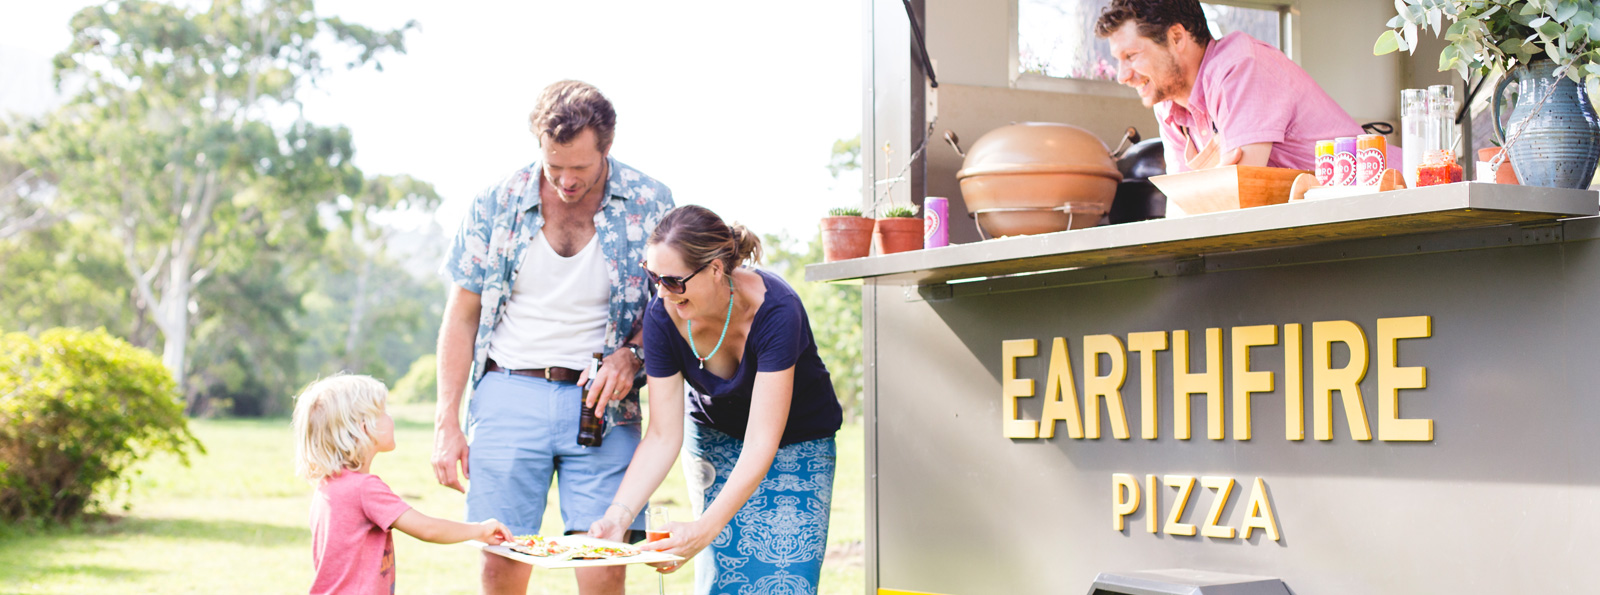 EarthFire Pizza Food Truck - Family eating